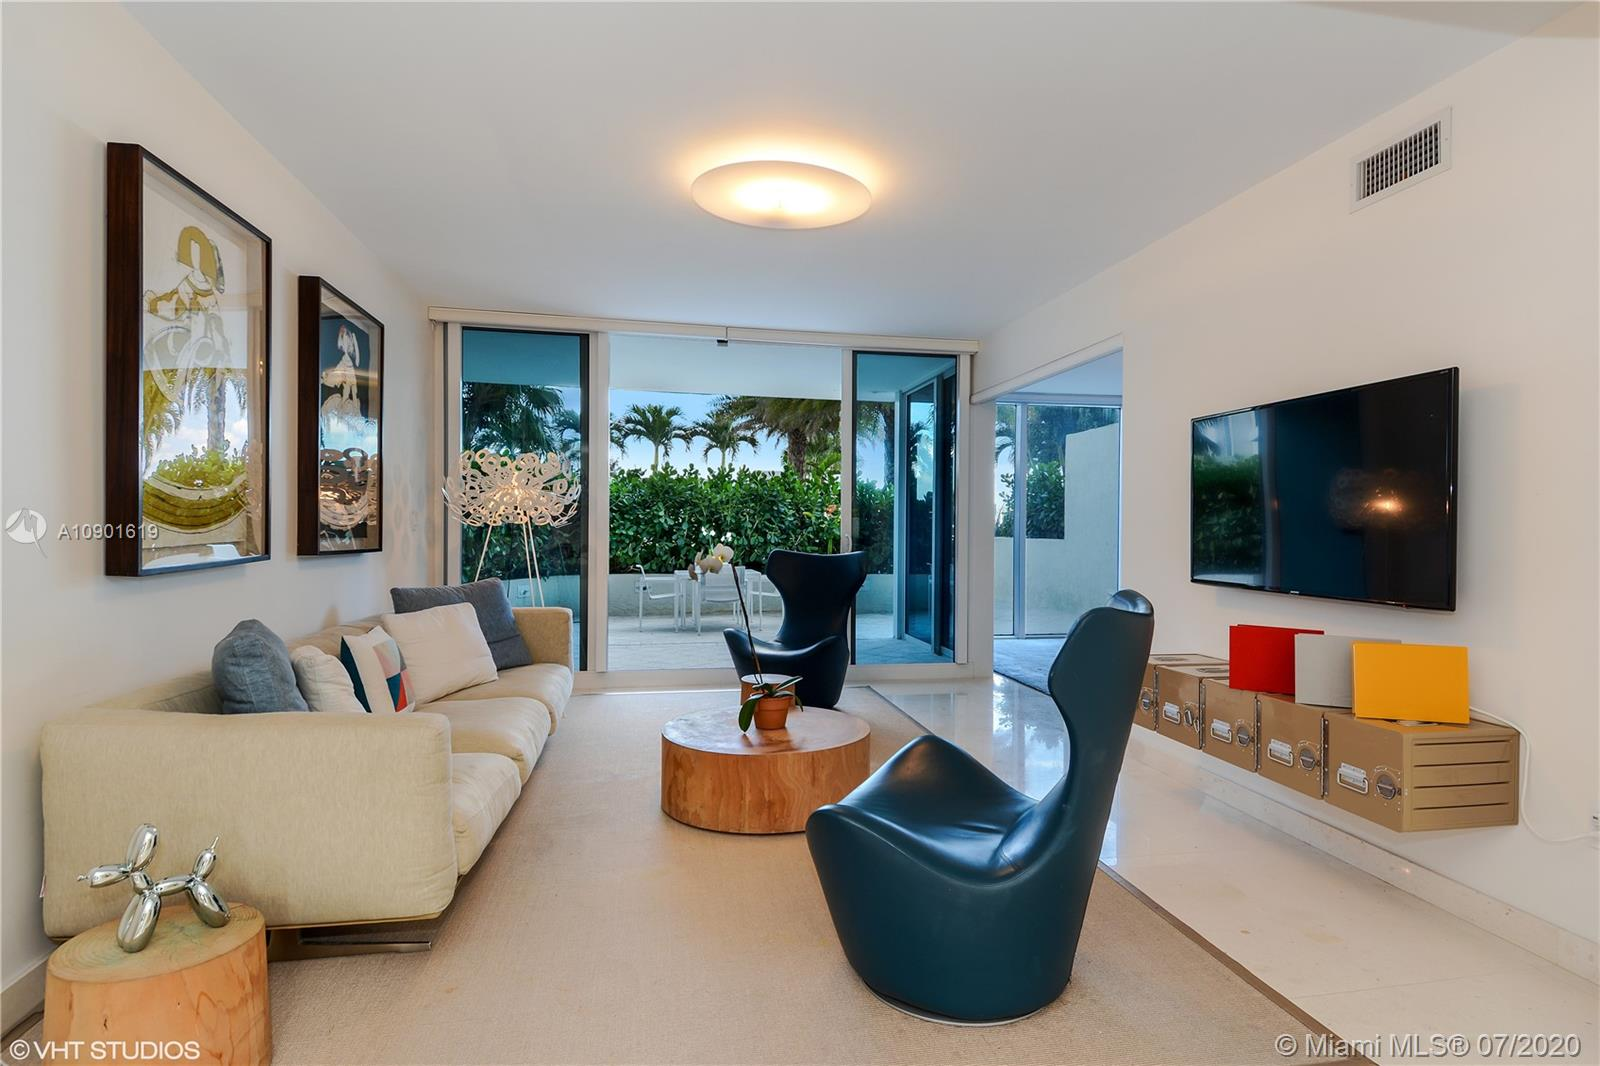 19111 Collins Ave #103 Property Photo